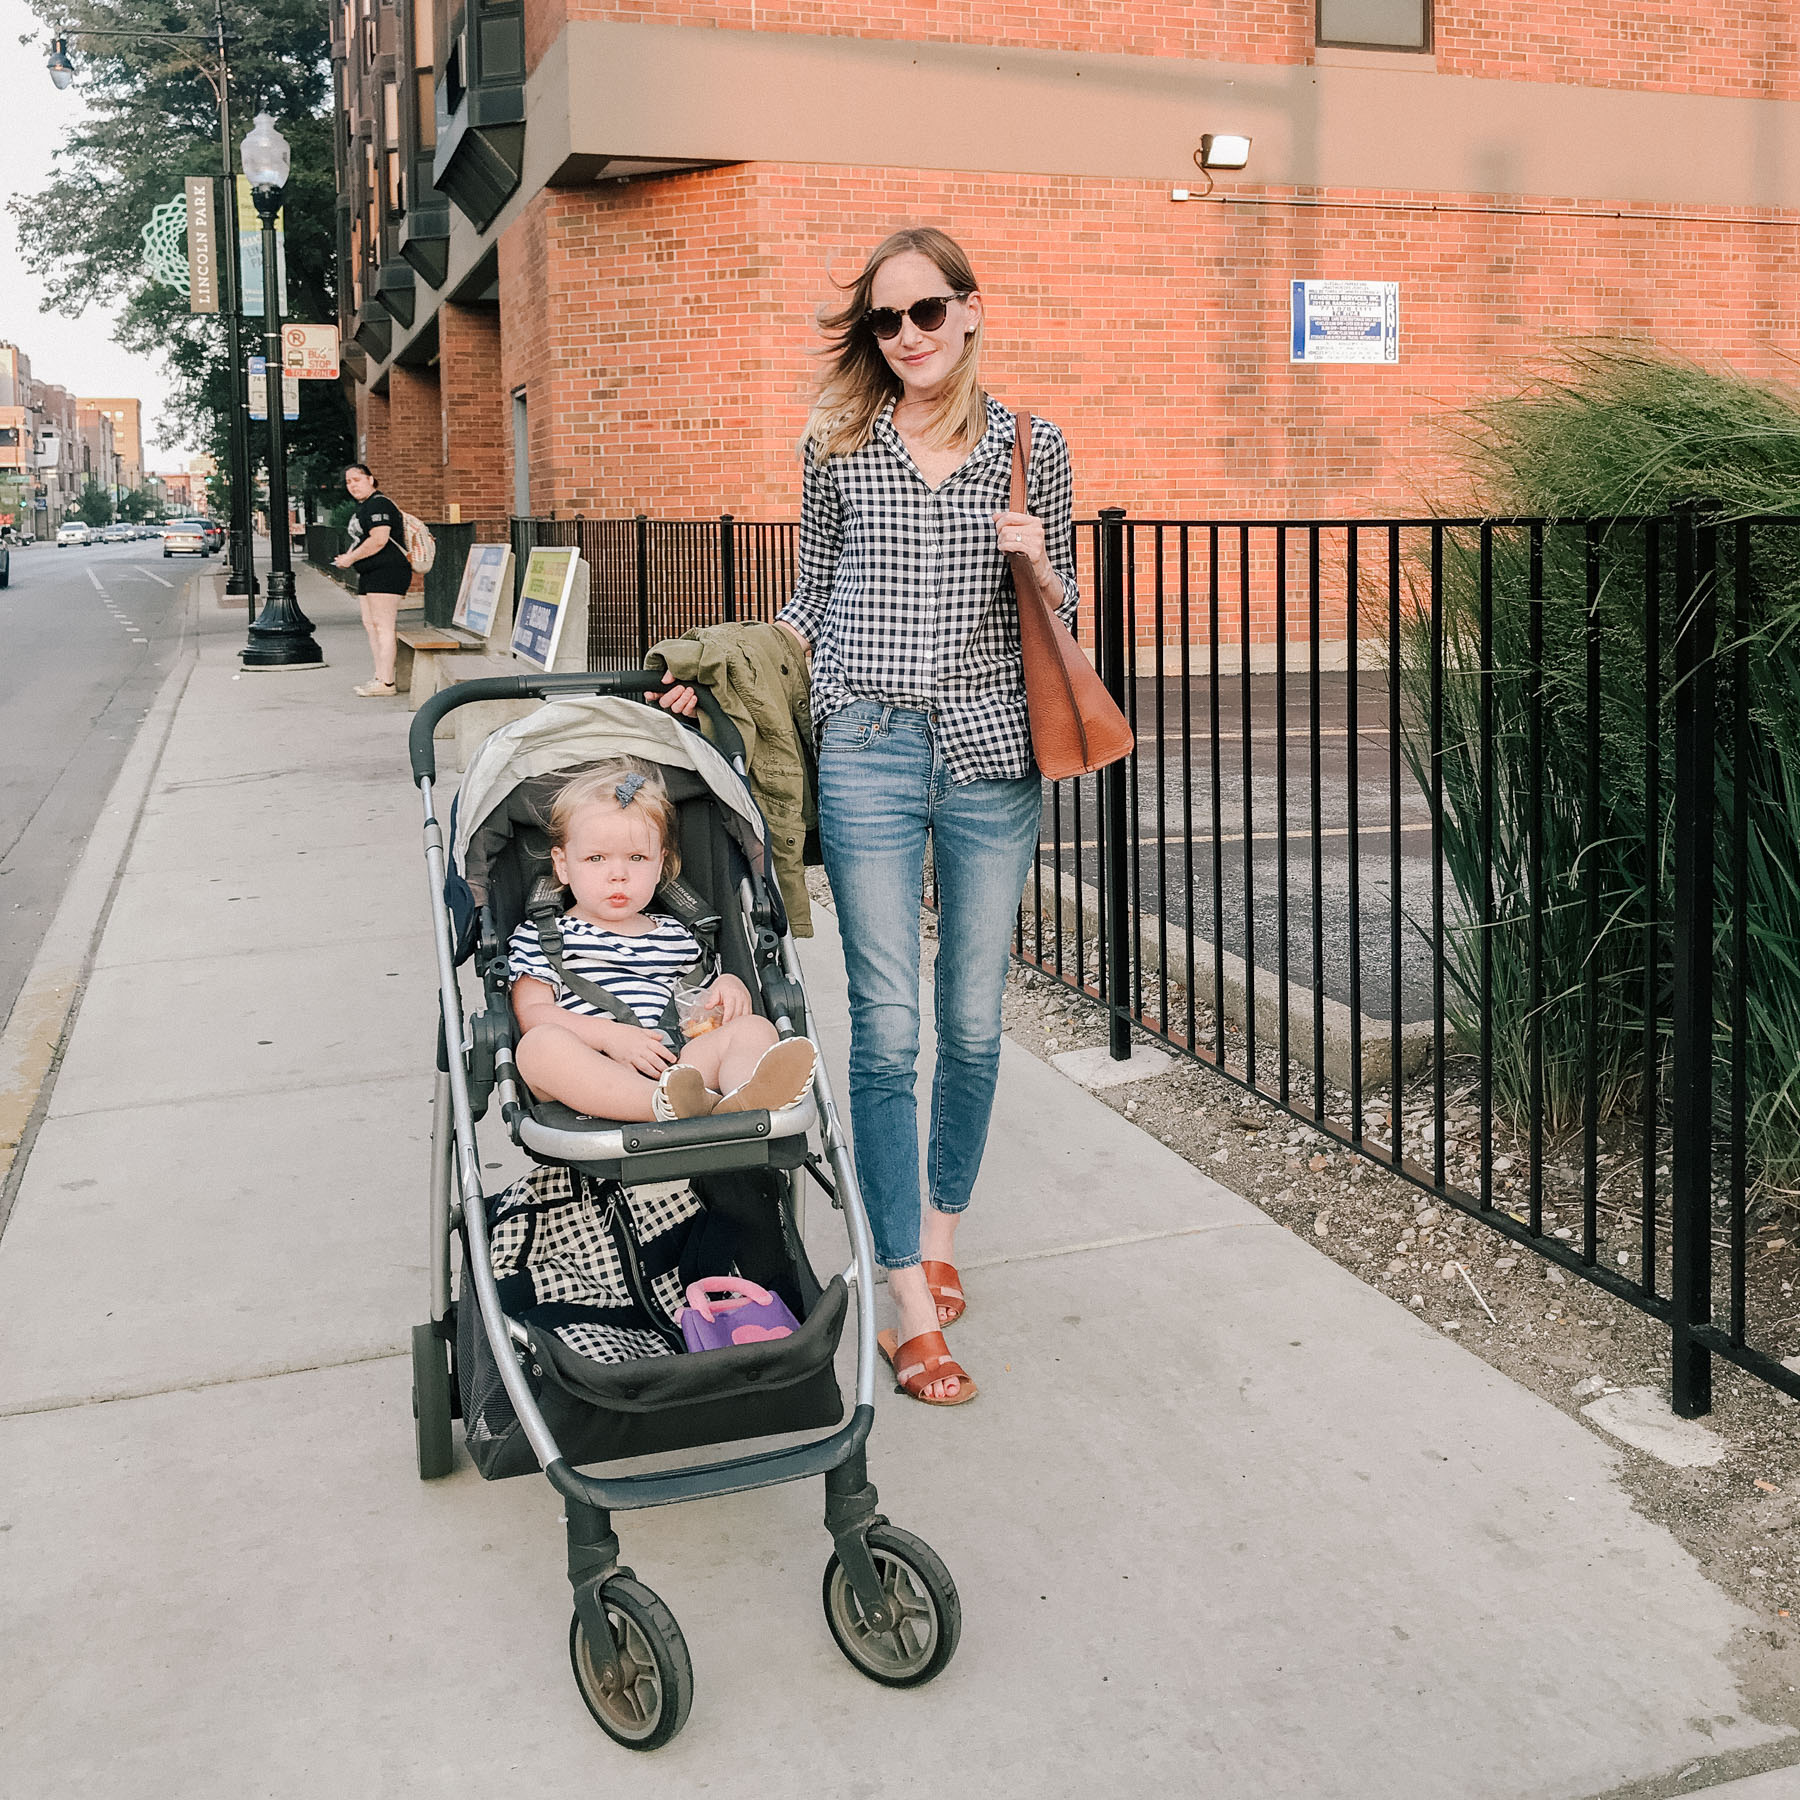 Gingham Shirt / J.Crew Factory Jeans / Everlane Sandals  / Faux Leather Tote / UppaBaby Stroller